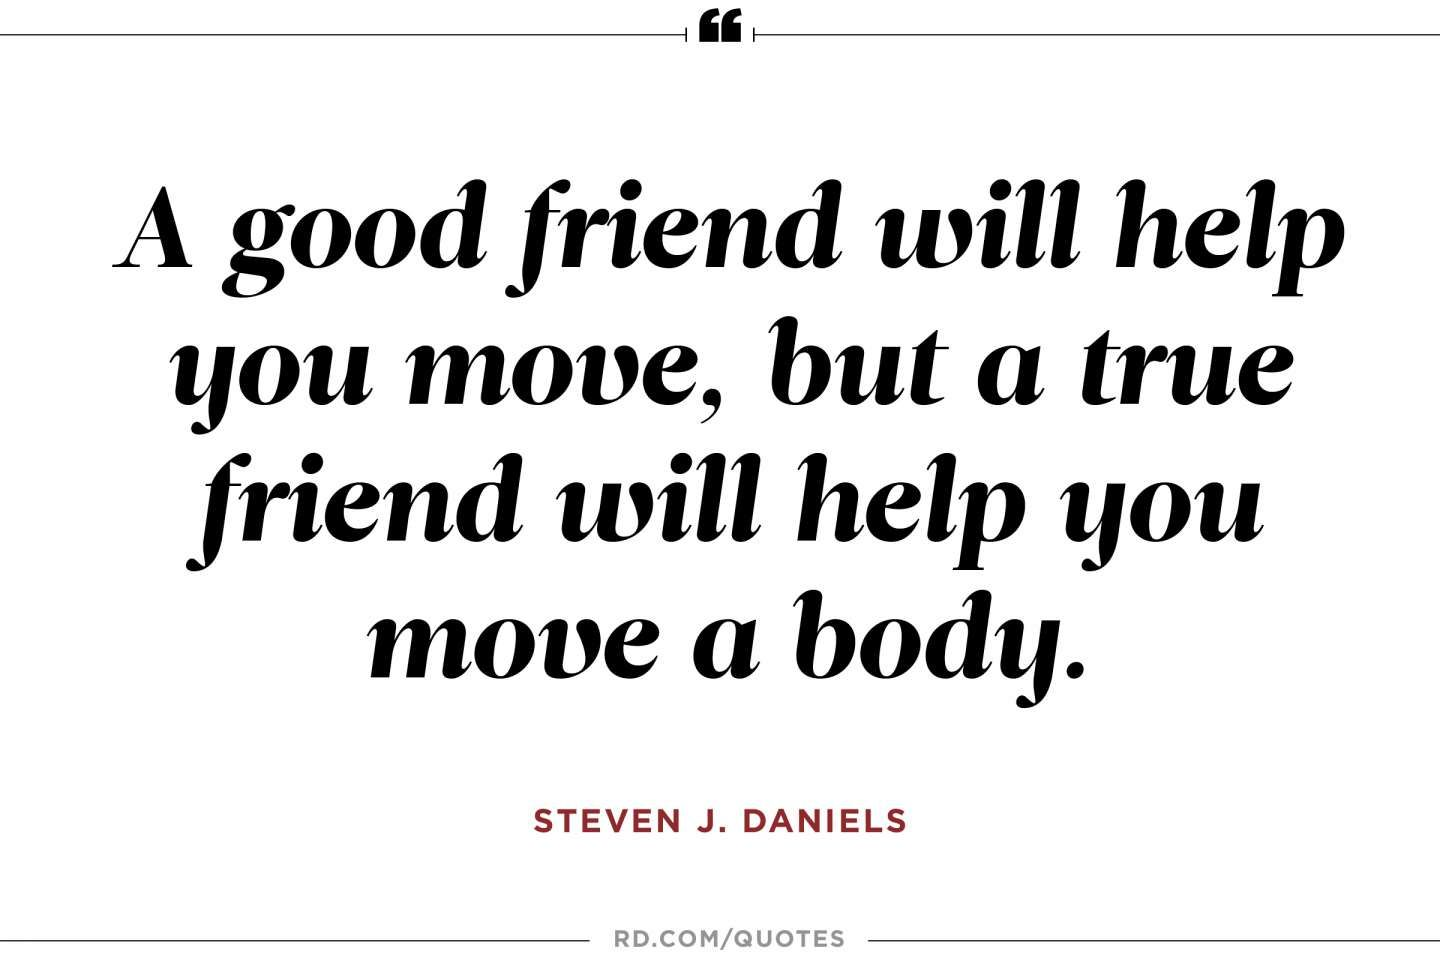 17 A Good Friend Will Help You Hide The Body Quote Friends Quotes Body Quotes Best Friend Quotes